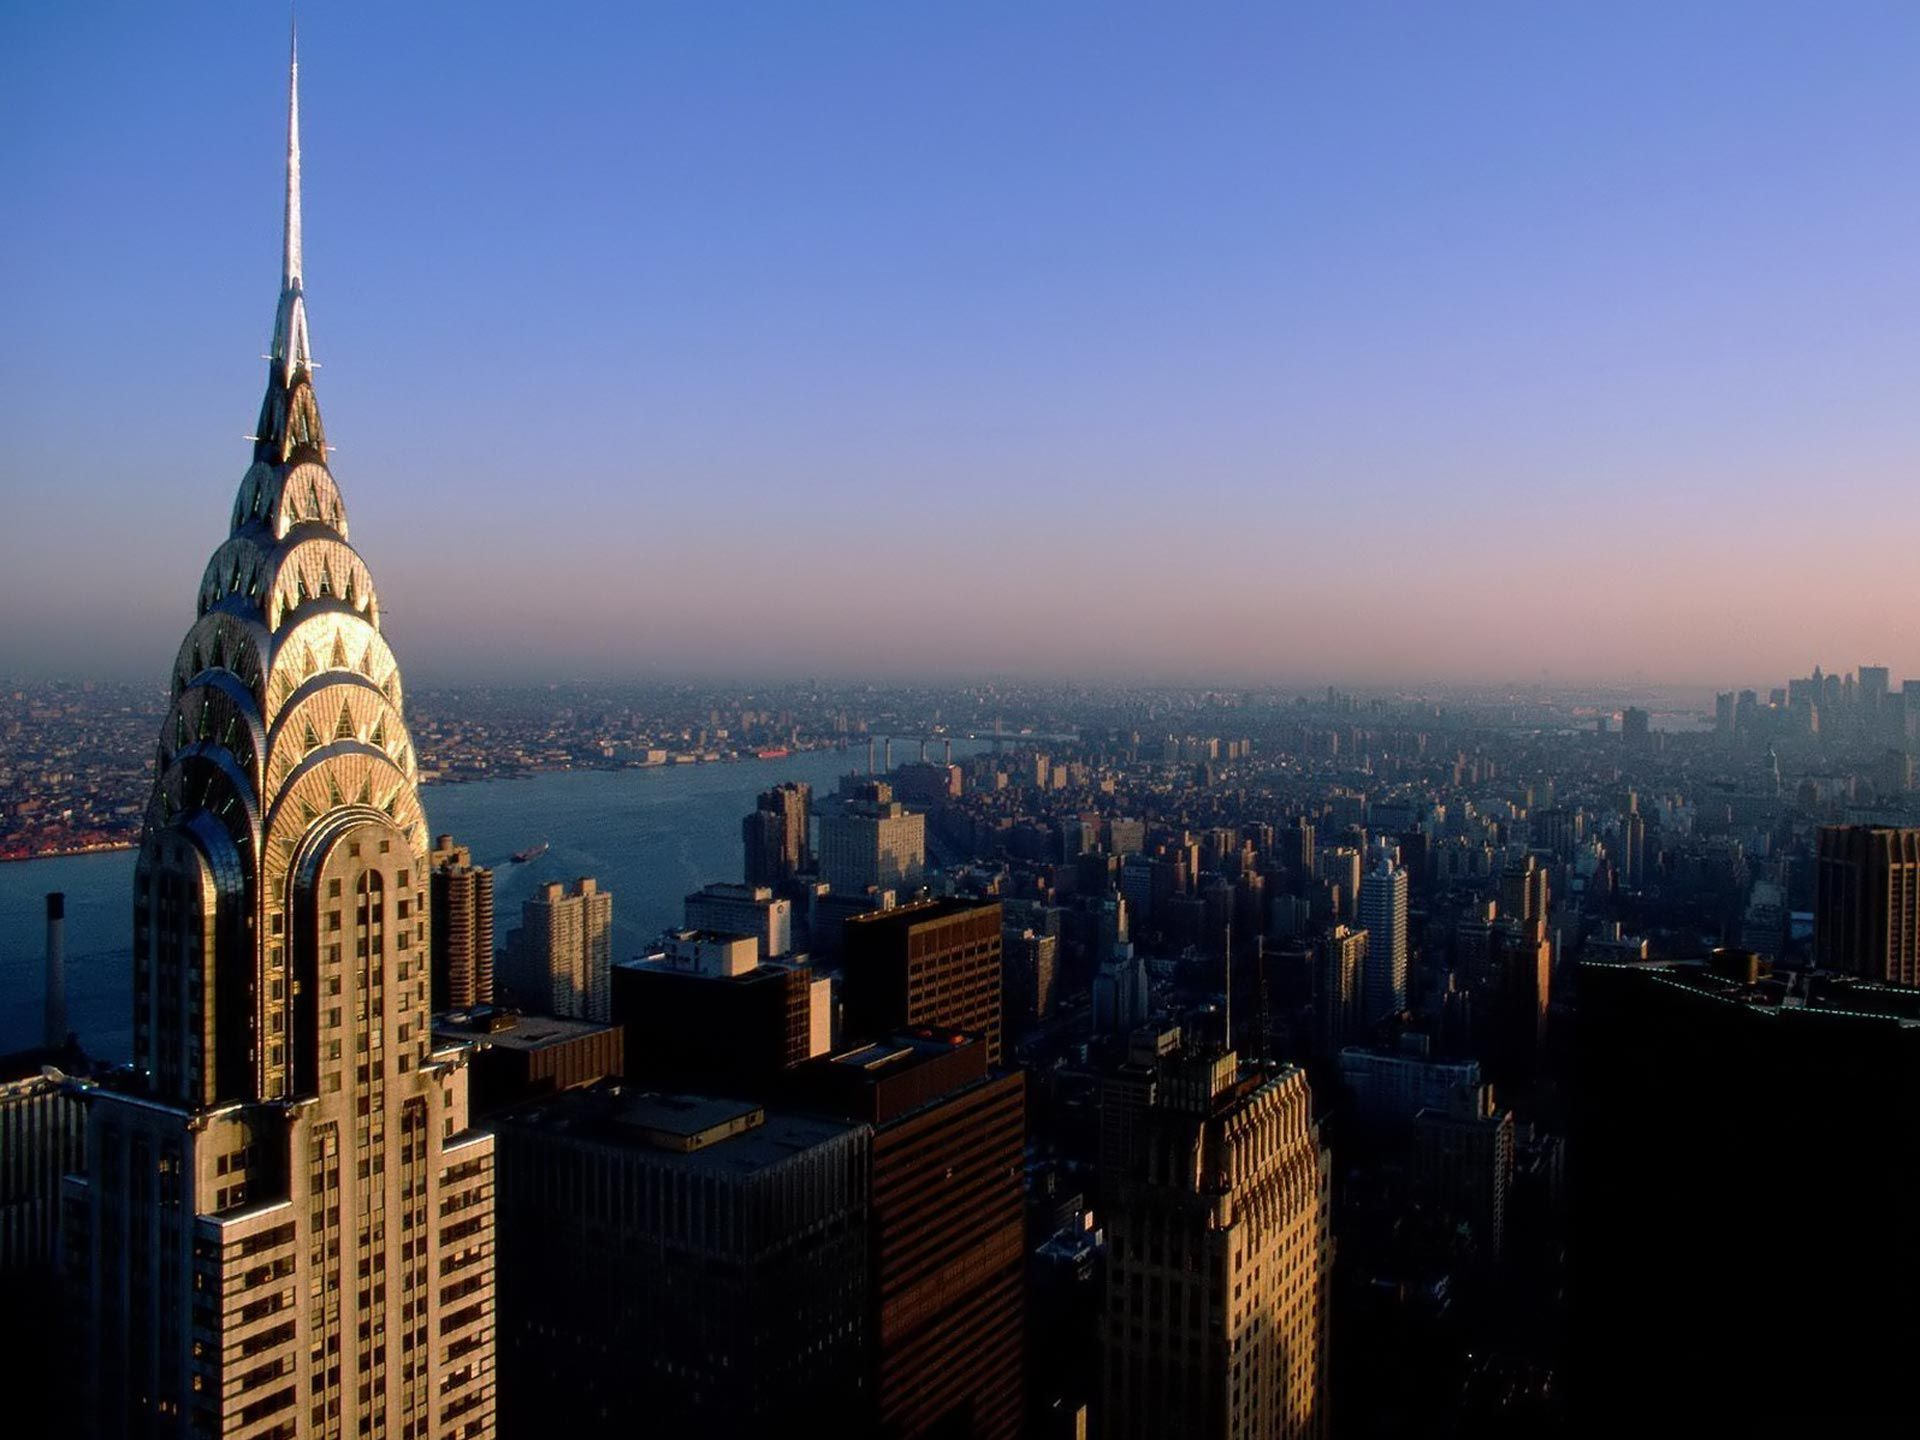 New York City Hd Wallpaper Chrysler Building Empire State